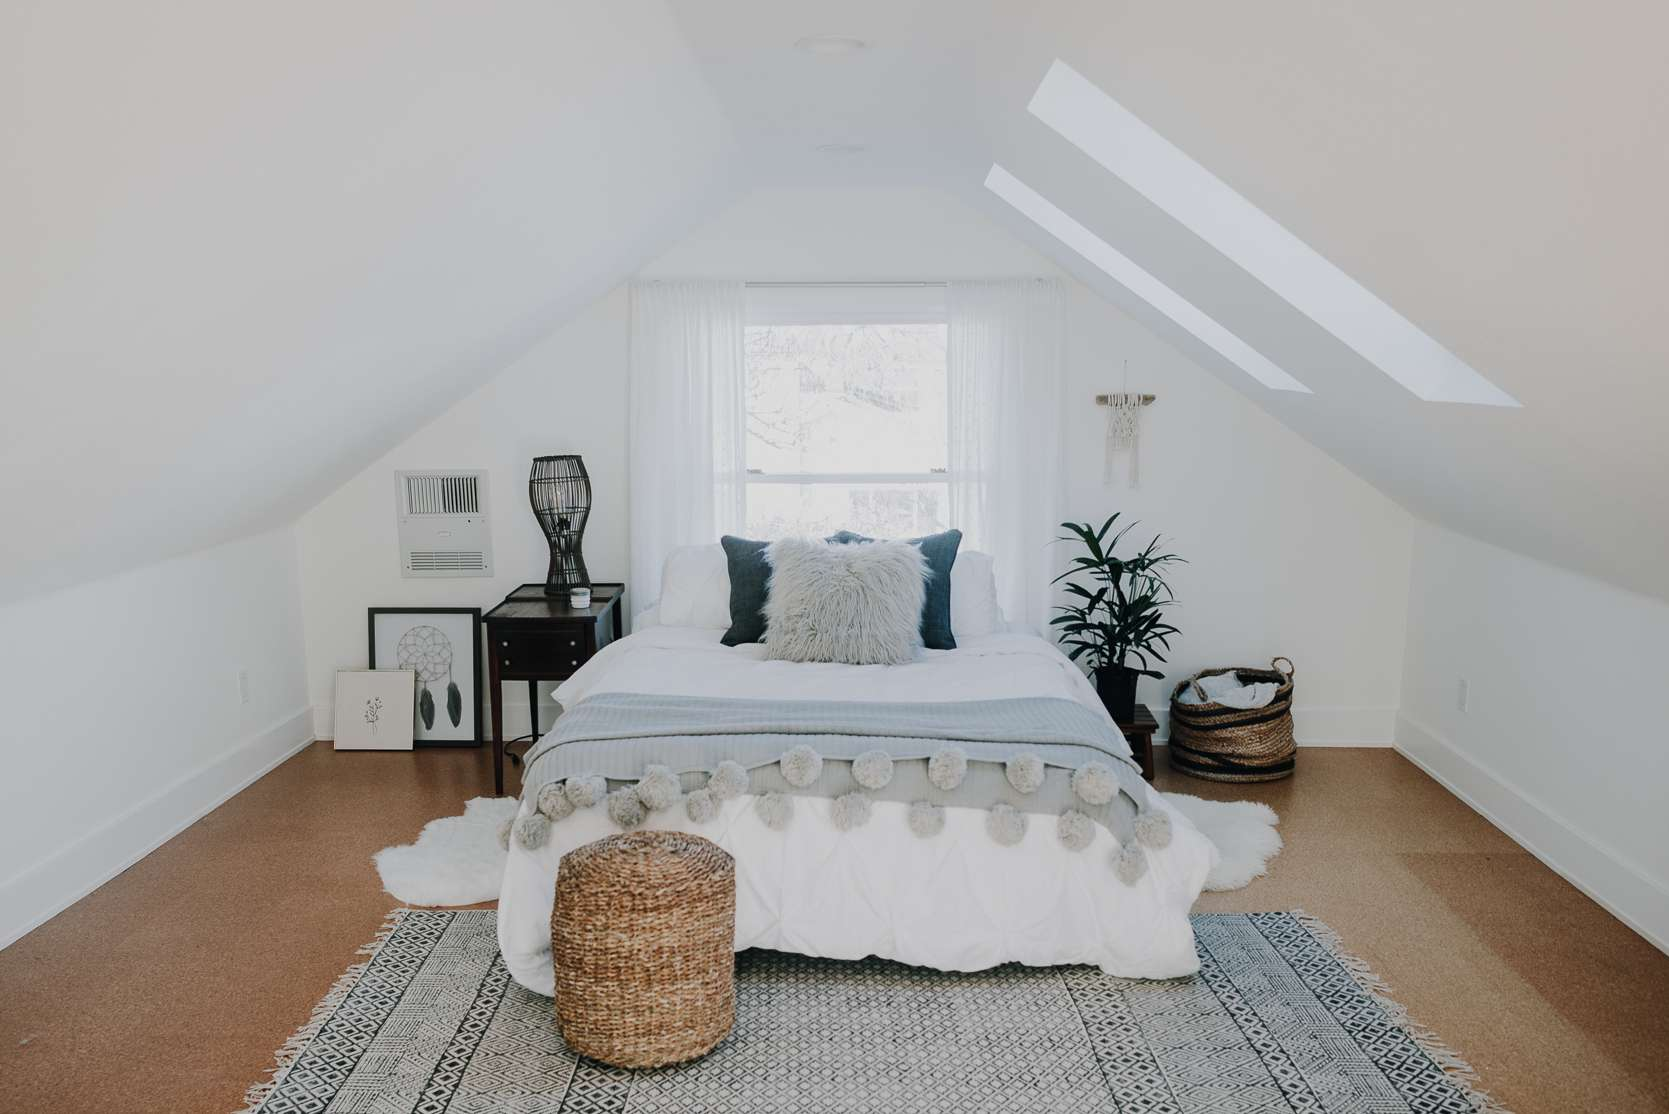 Boho-inspired bedroom with natural accents